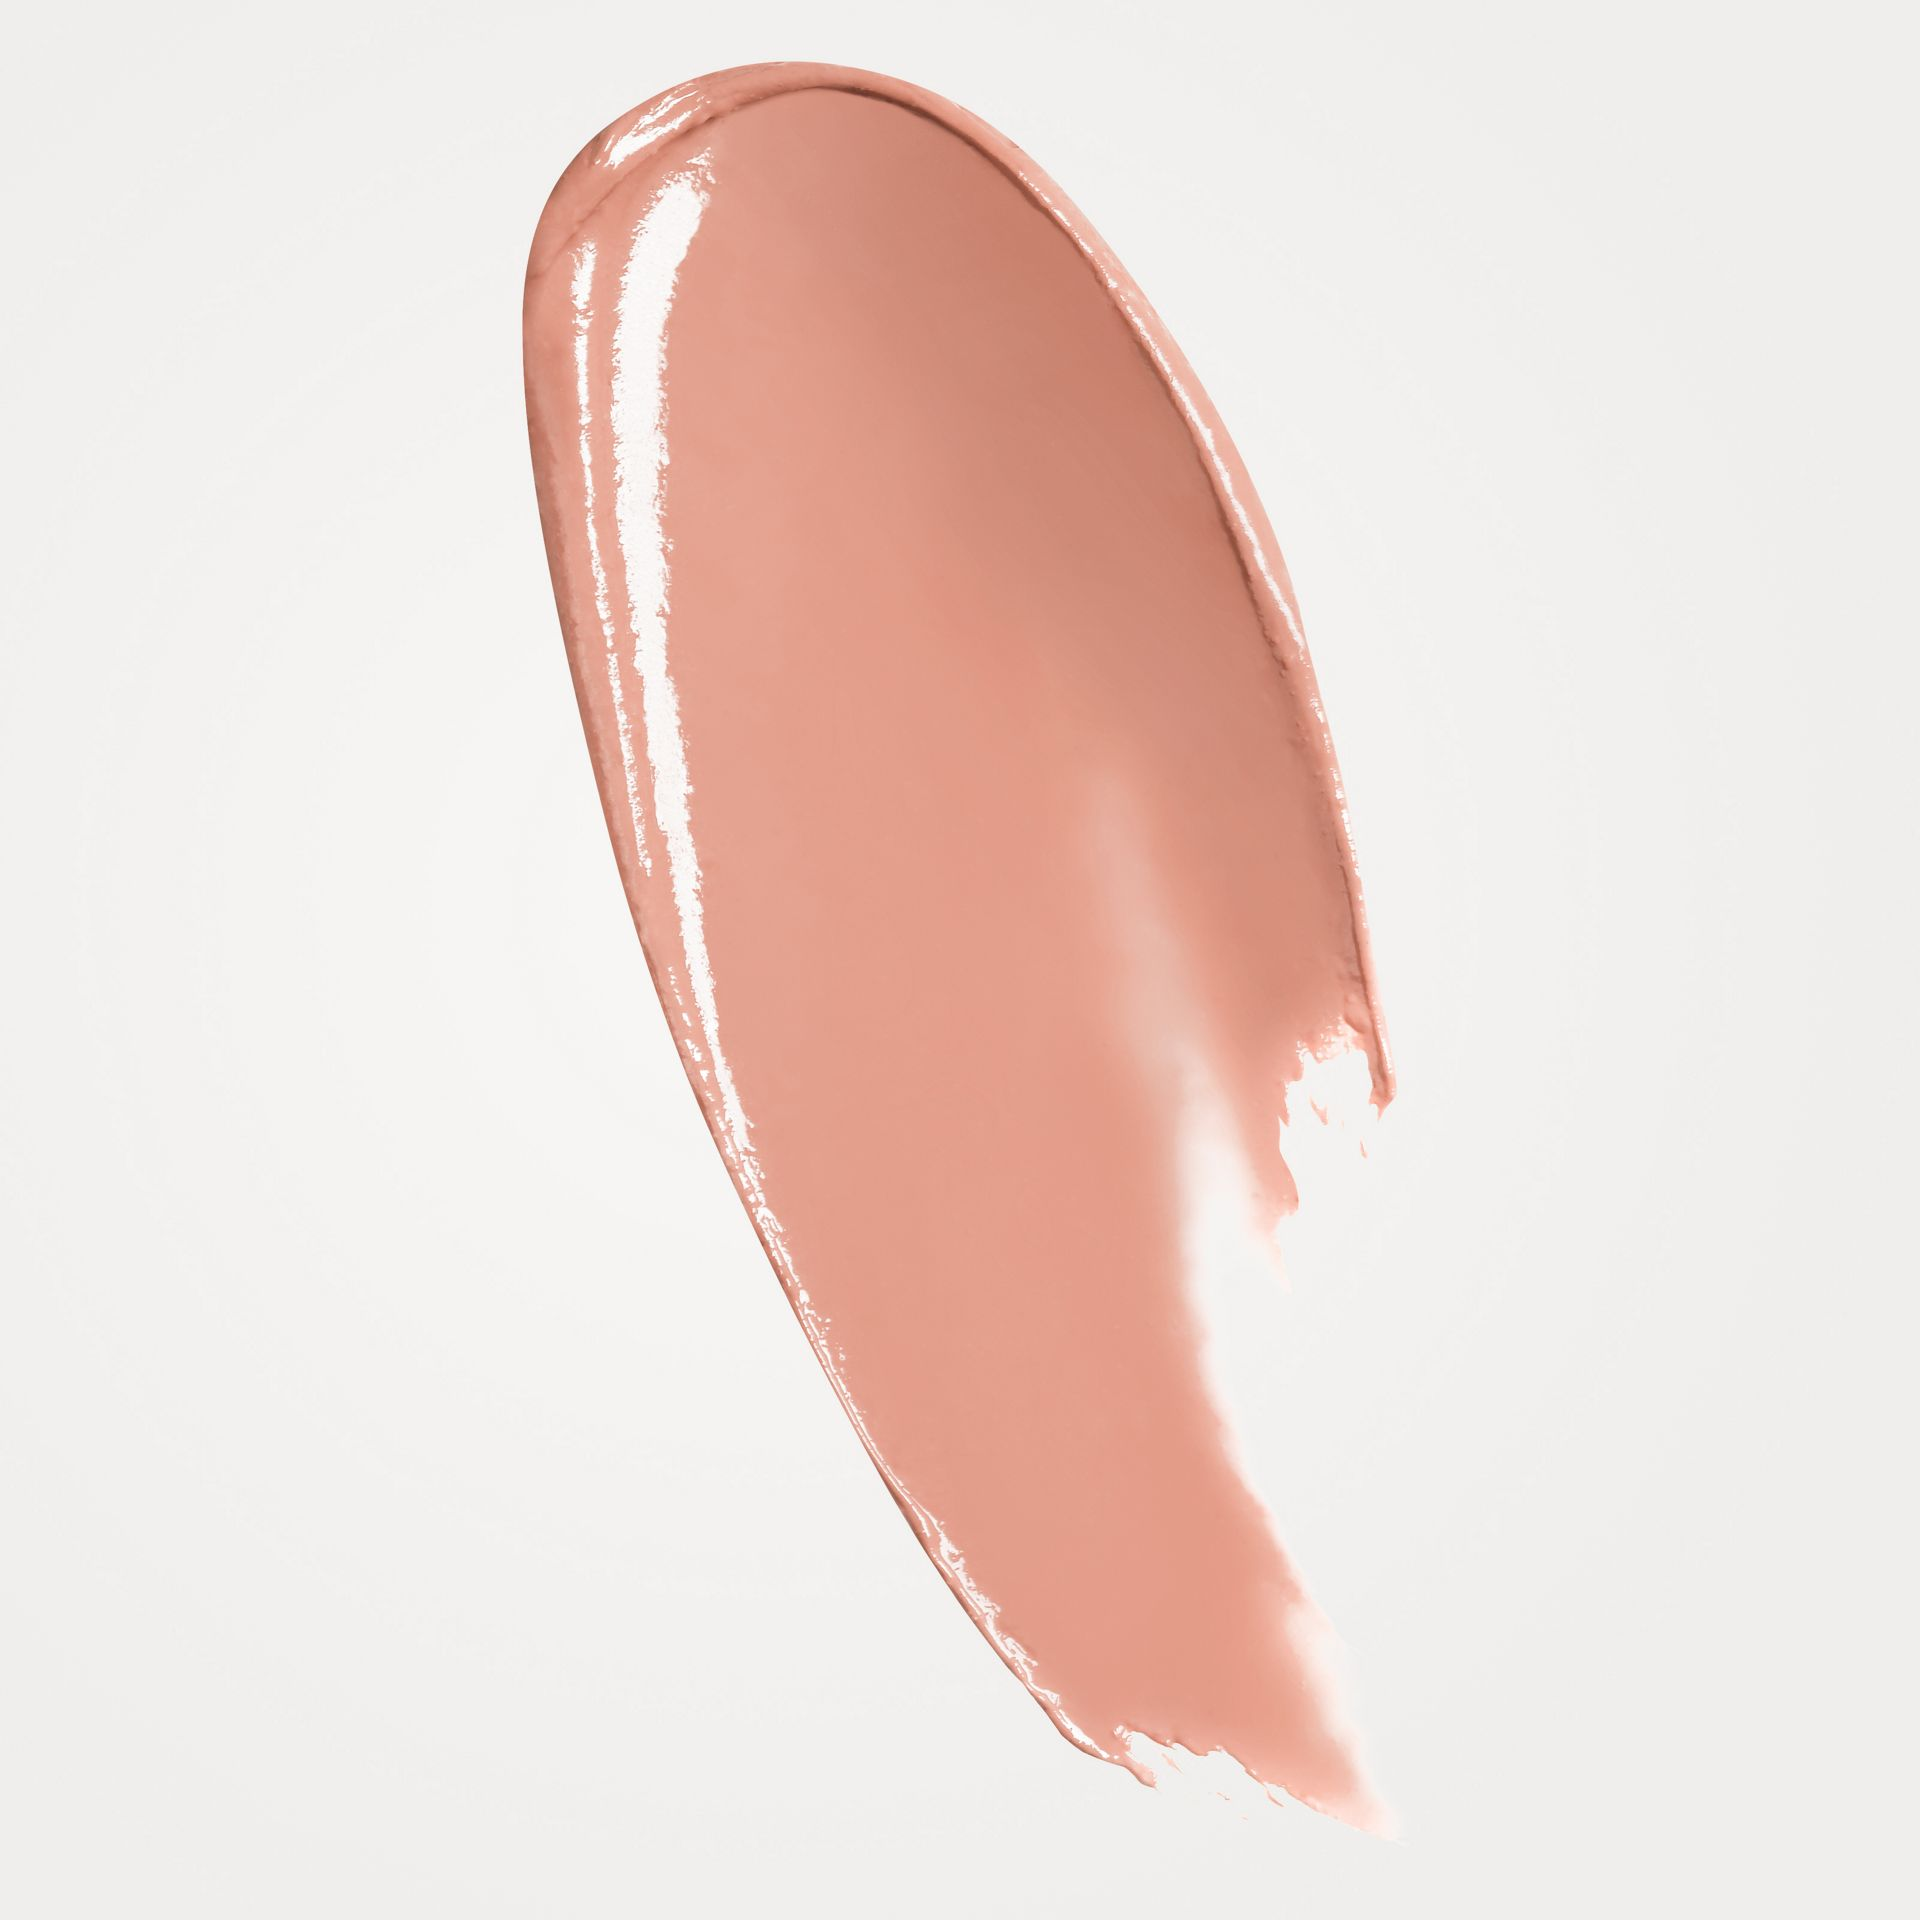 Batom Burberry Full Kisses – Nude Blush No.501 - galeria de imagens 2